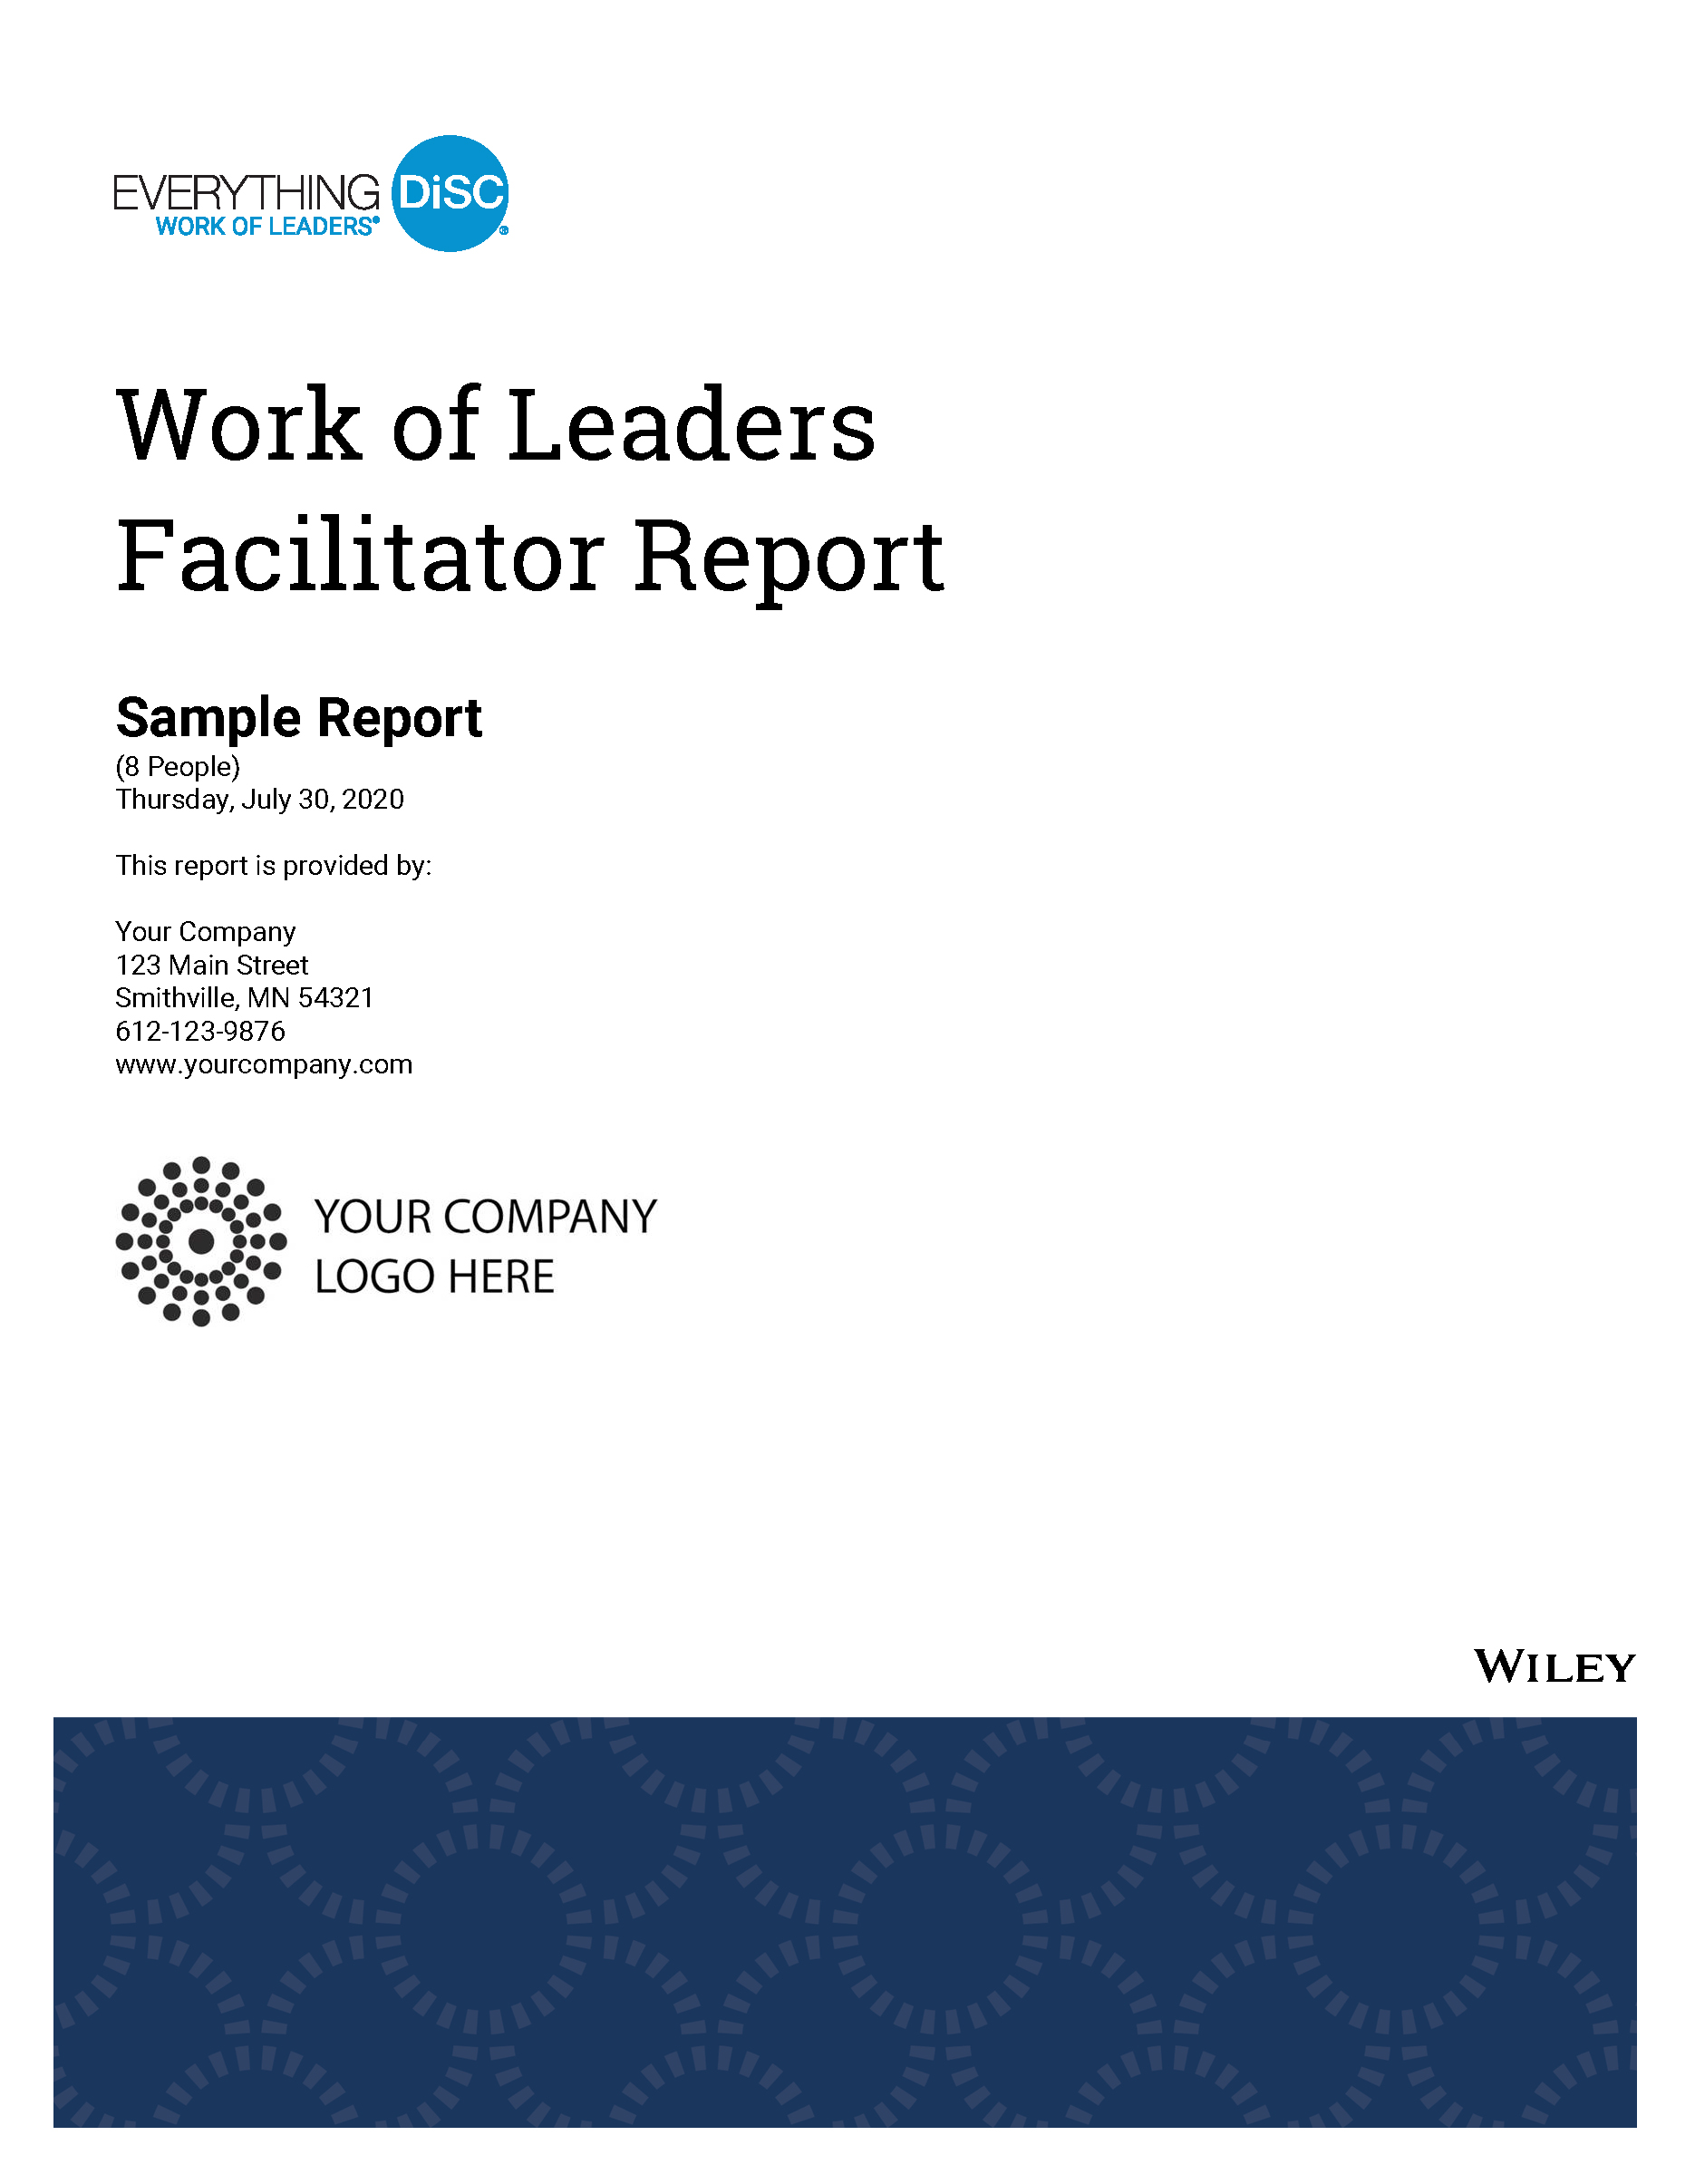 Everything DiSC Work of Leaders Facilitator Report Image 2020